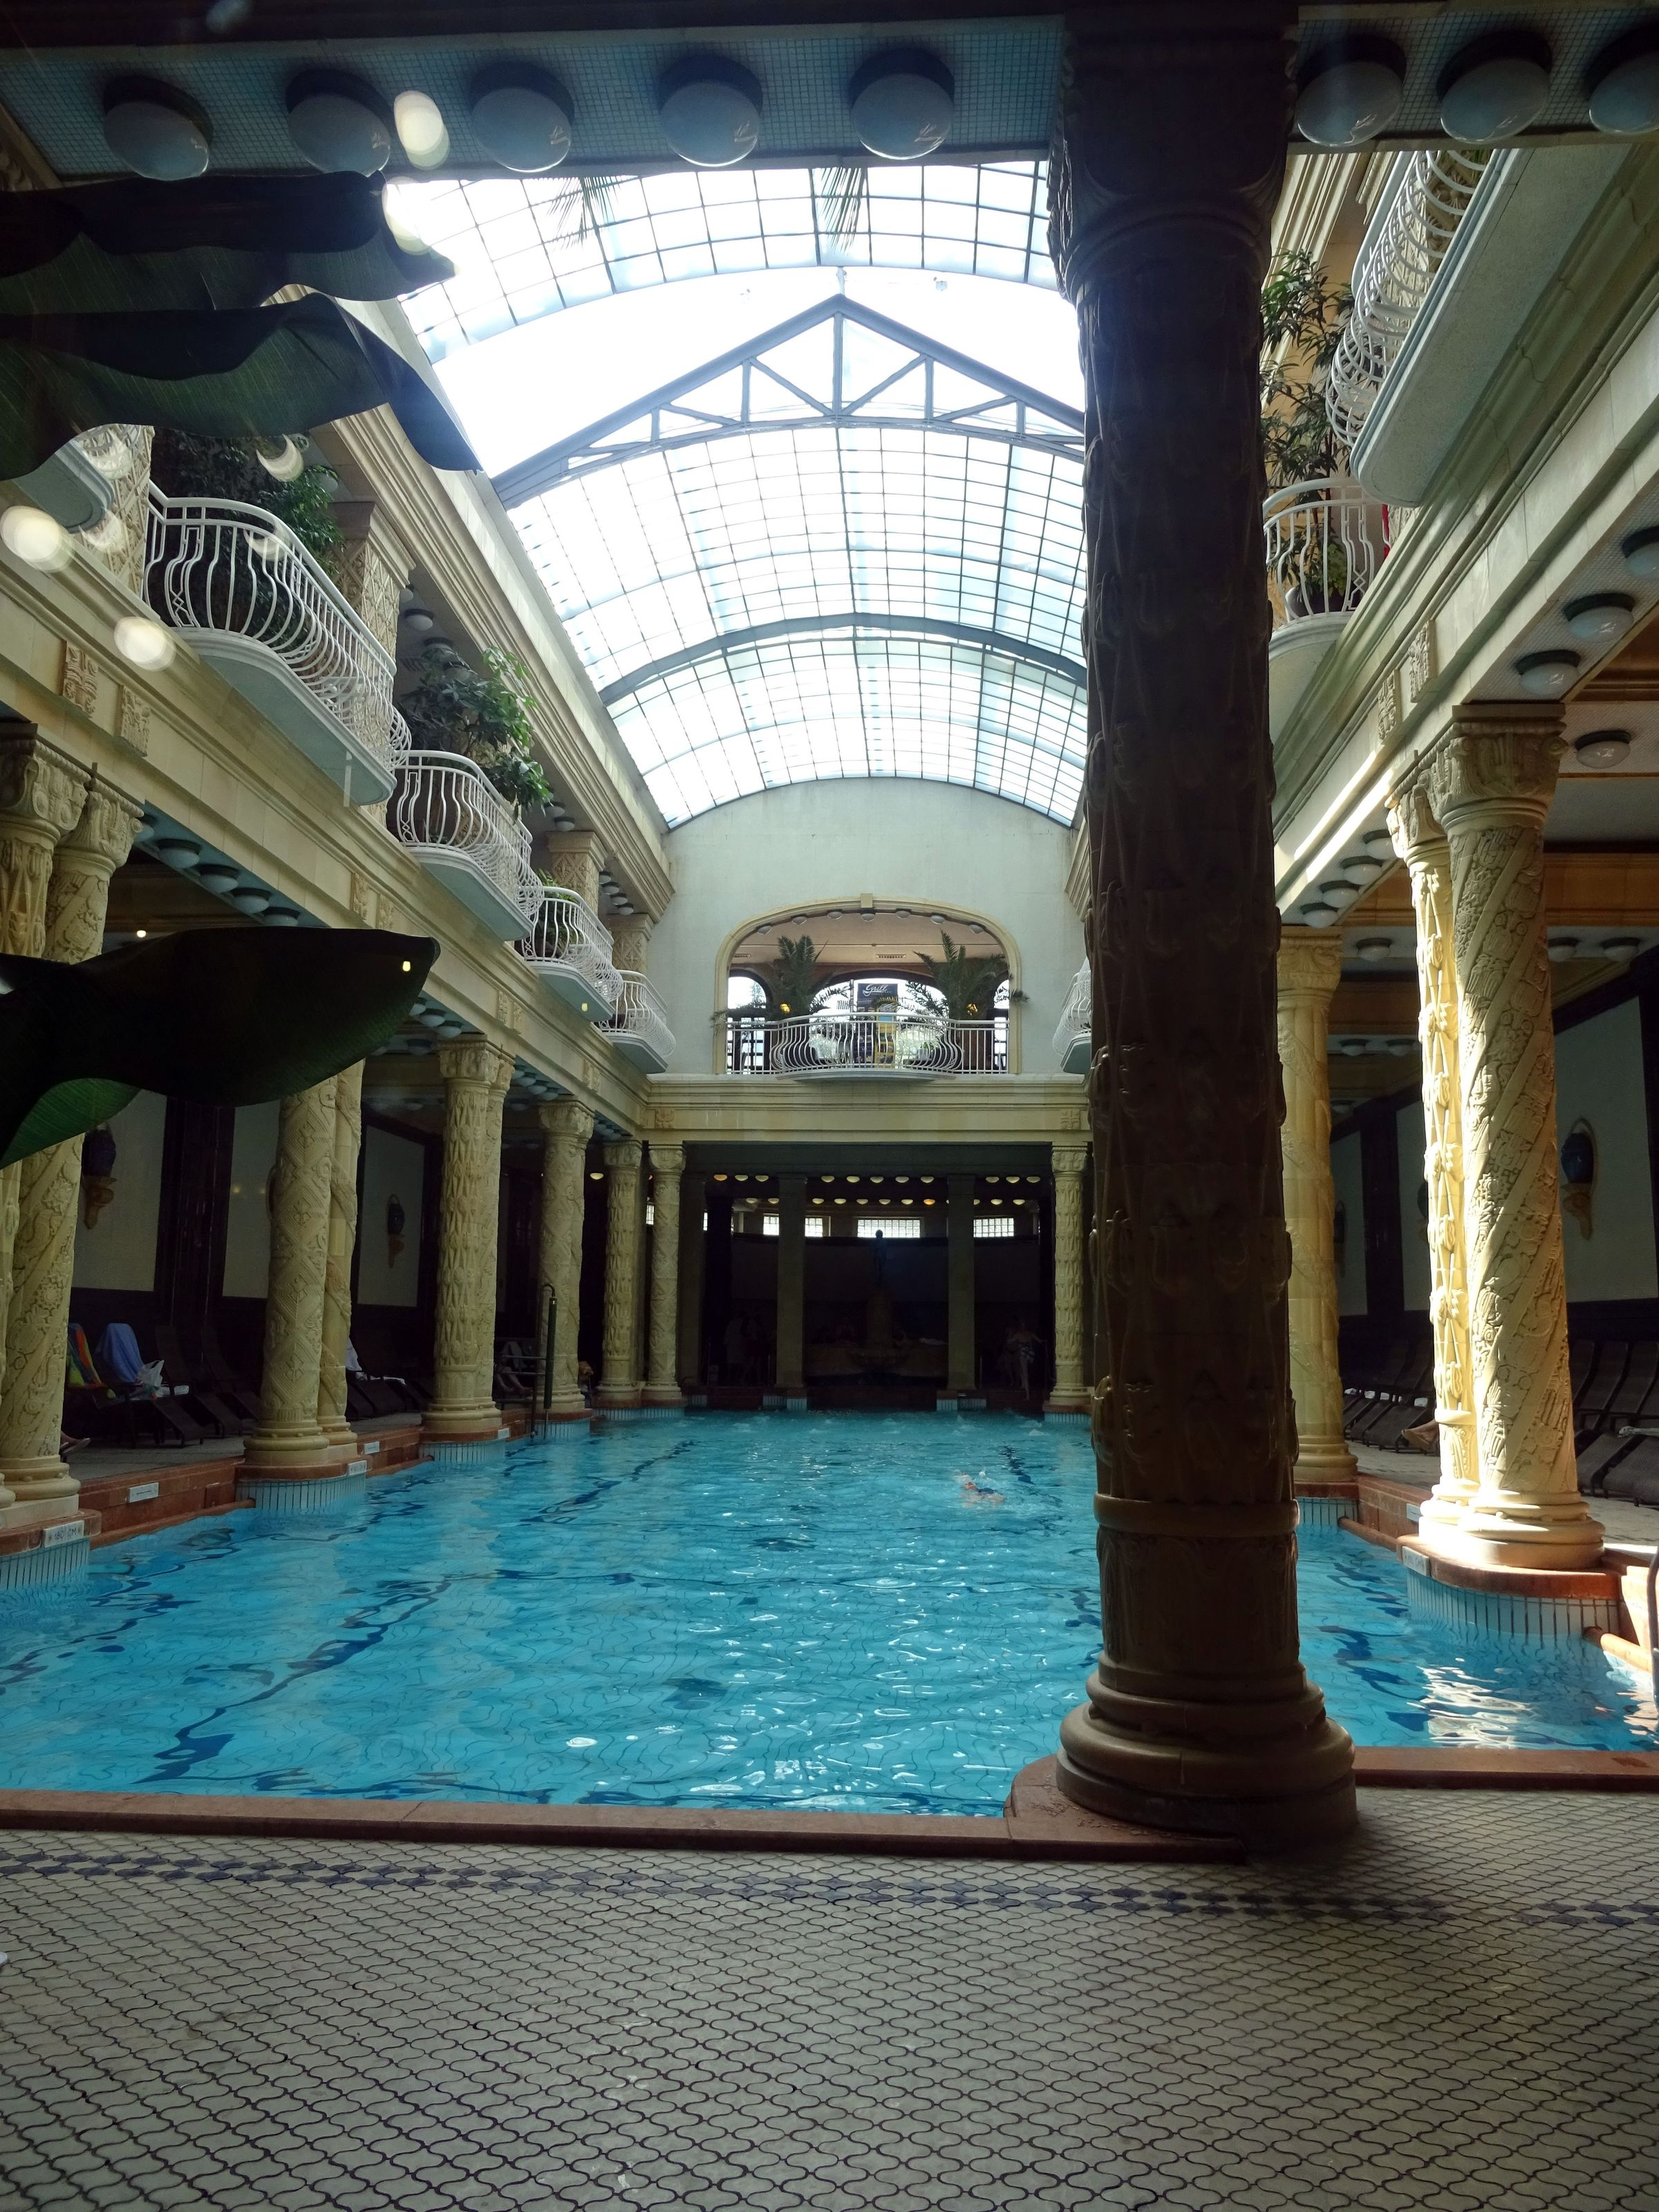 Inside Gellert thermal baths